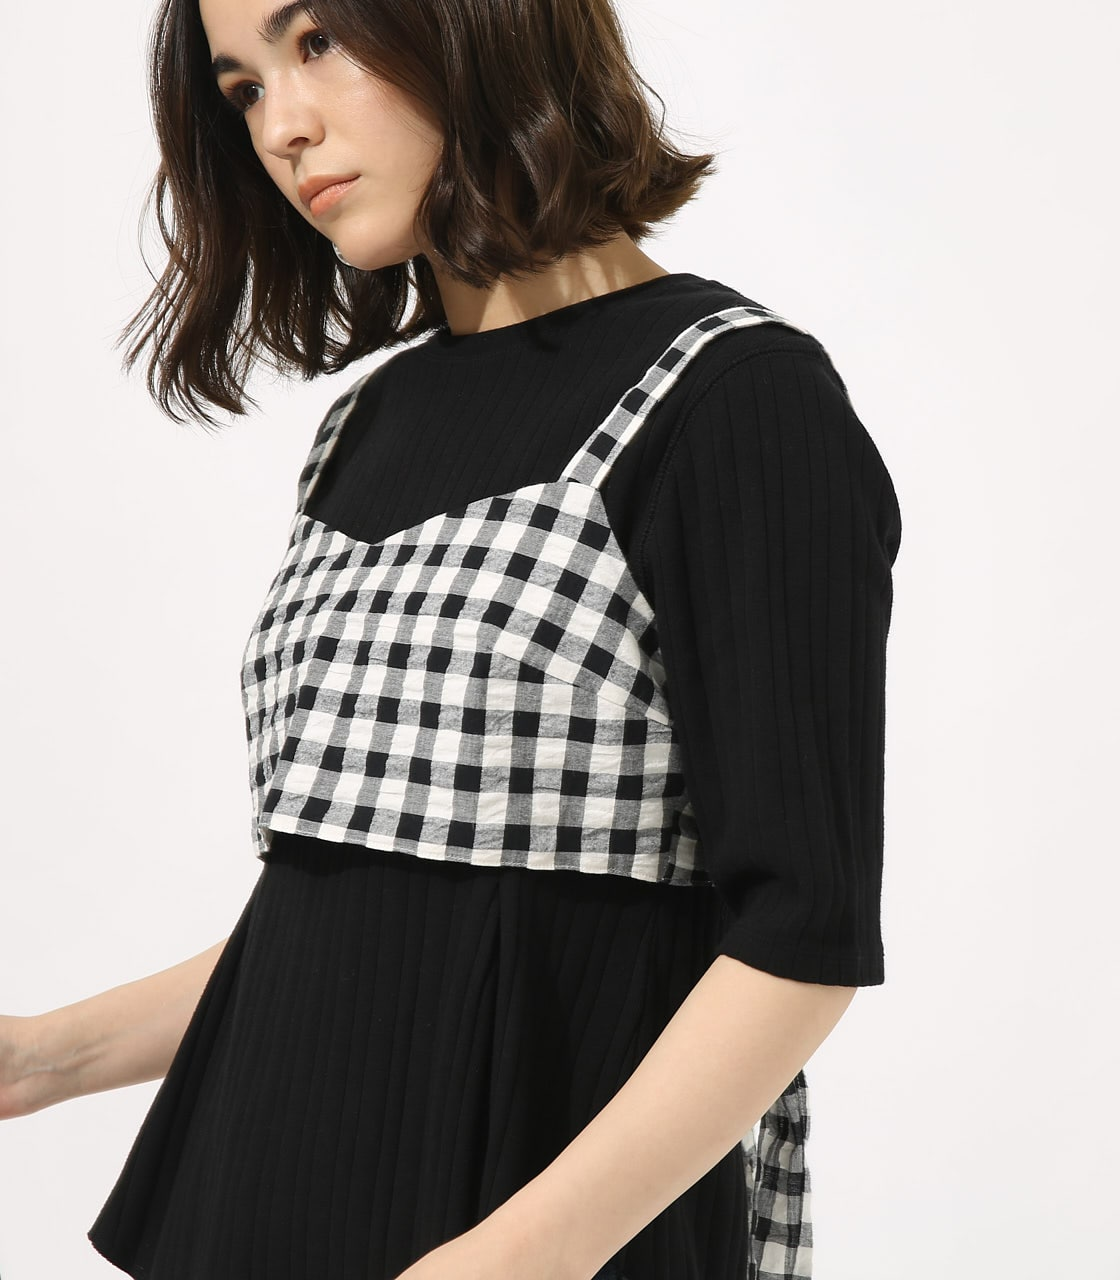 【AZUL BY MOUSSY】GINGHAM CHECK BUSTIER TOPS 【MOOK49掲載 90054】 詳細画像 柄BLK 1